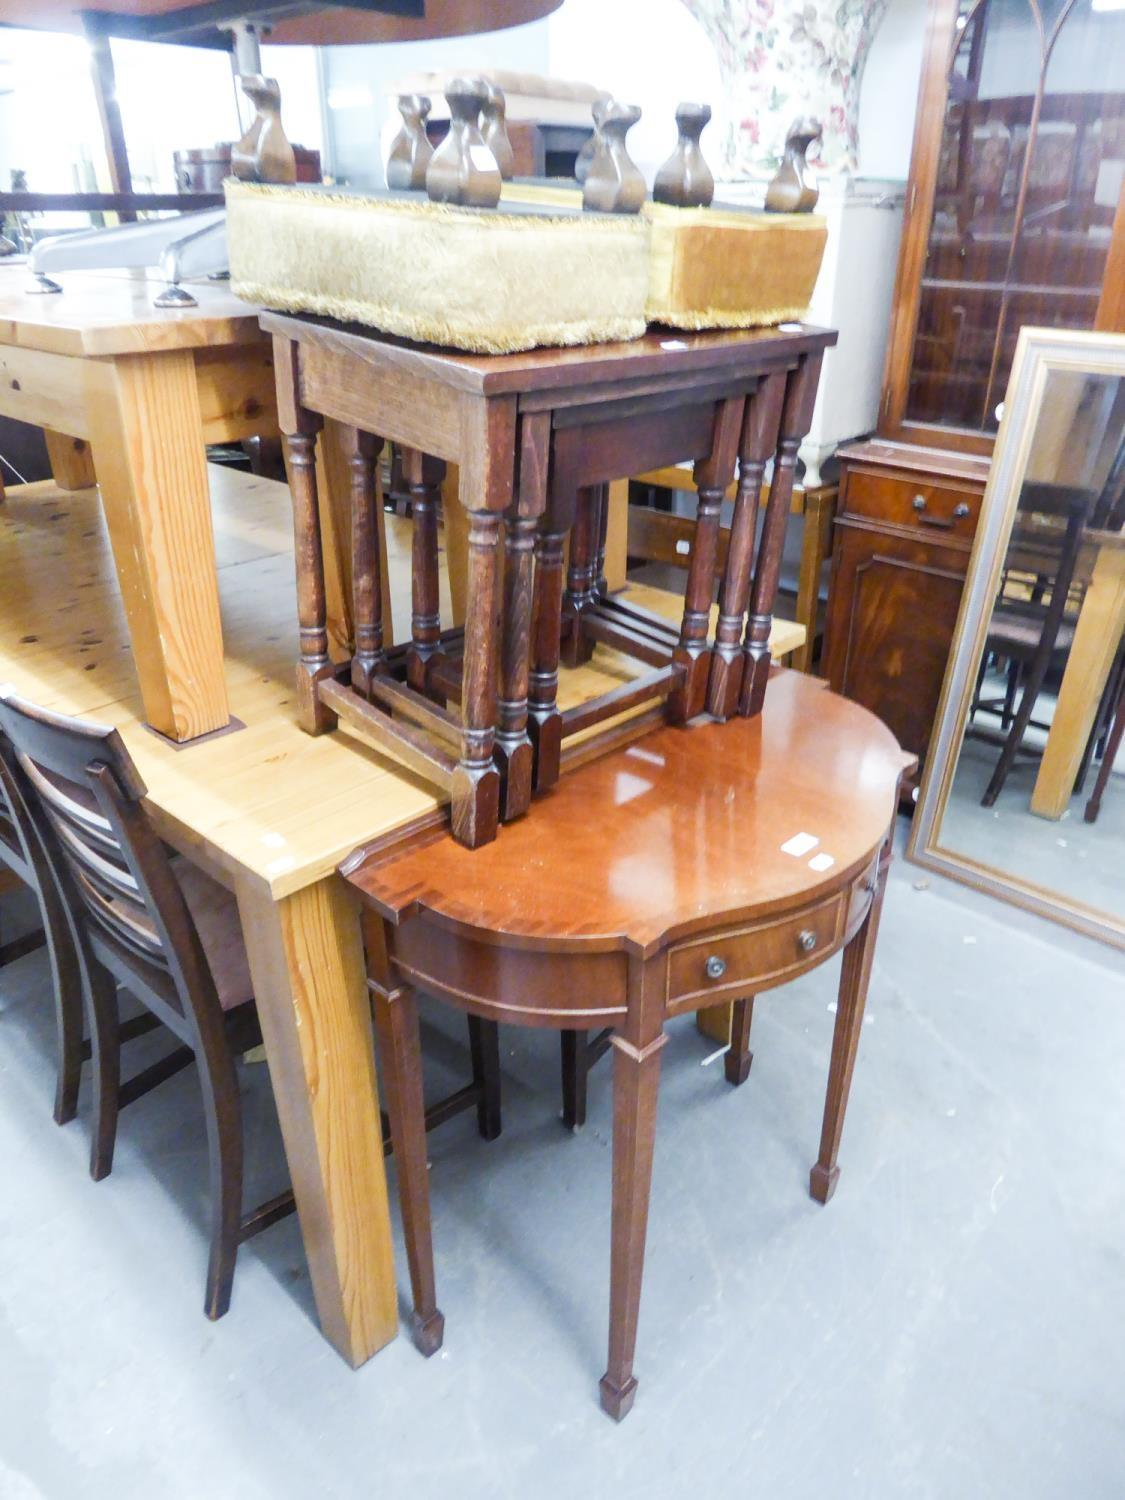 Lot 61 - A REPRODUCTION DEMI-LUNE TABLE, A PAIR OF SMALL STOOLS, AN OAK NEST OF TABLES